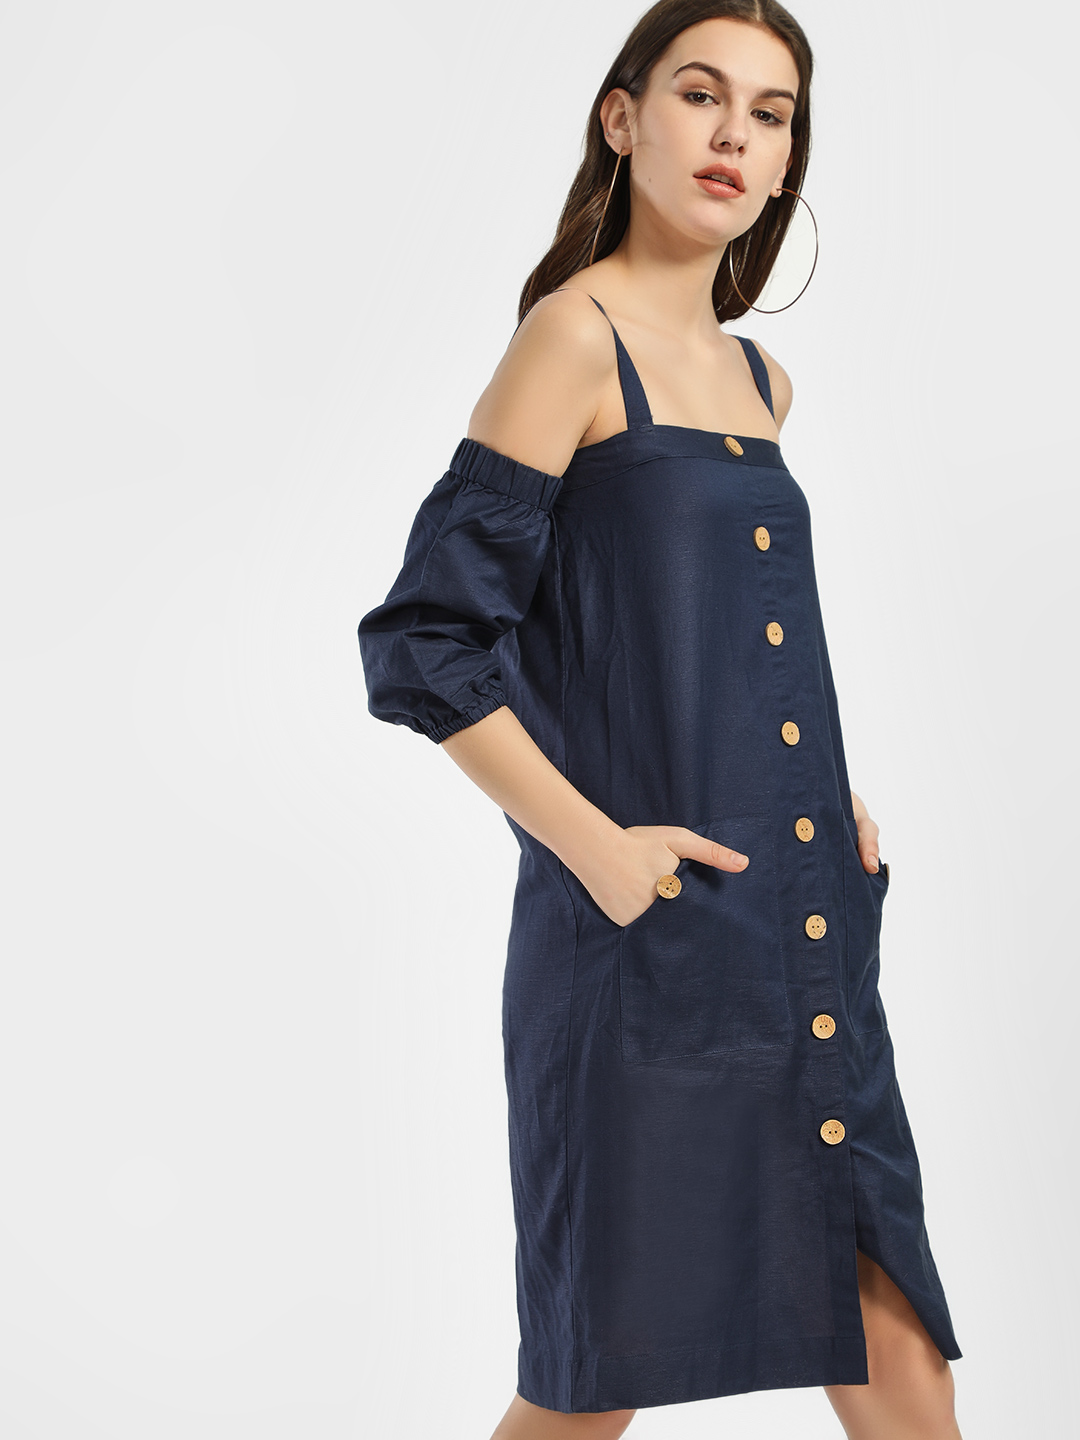 KOOVS Navy Cold Shoulder Shift Dress 1